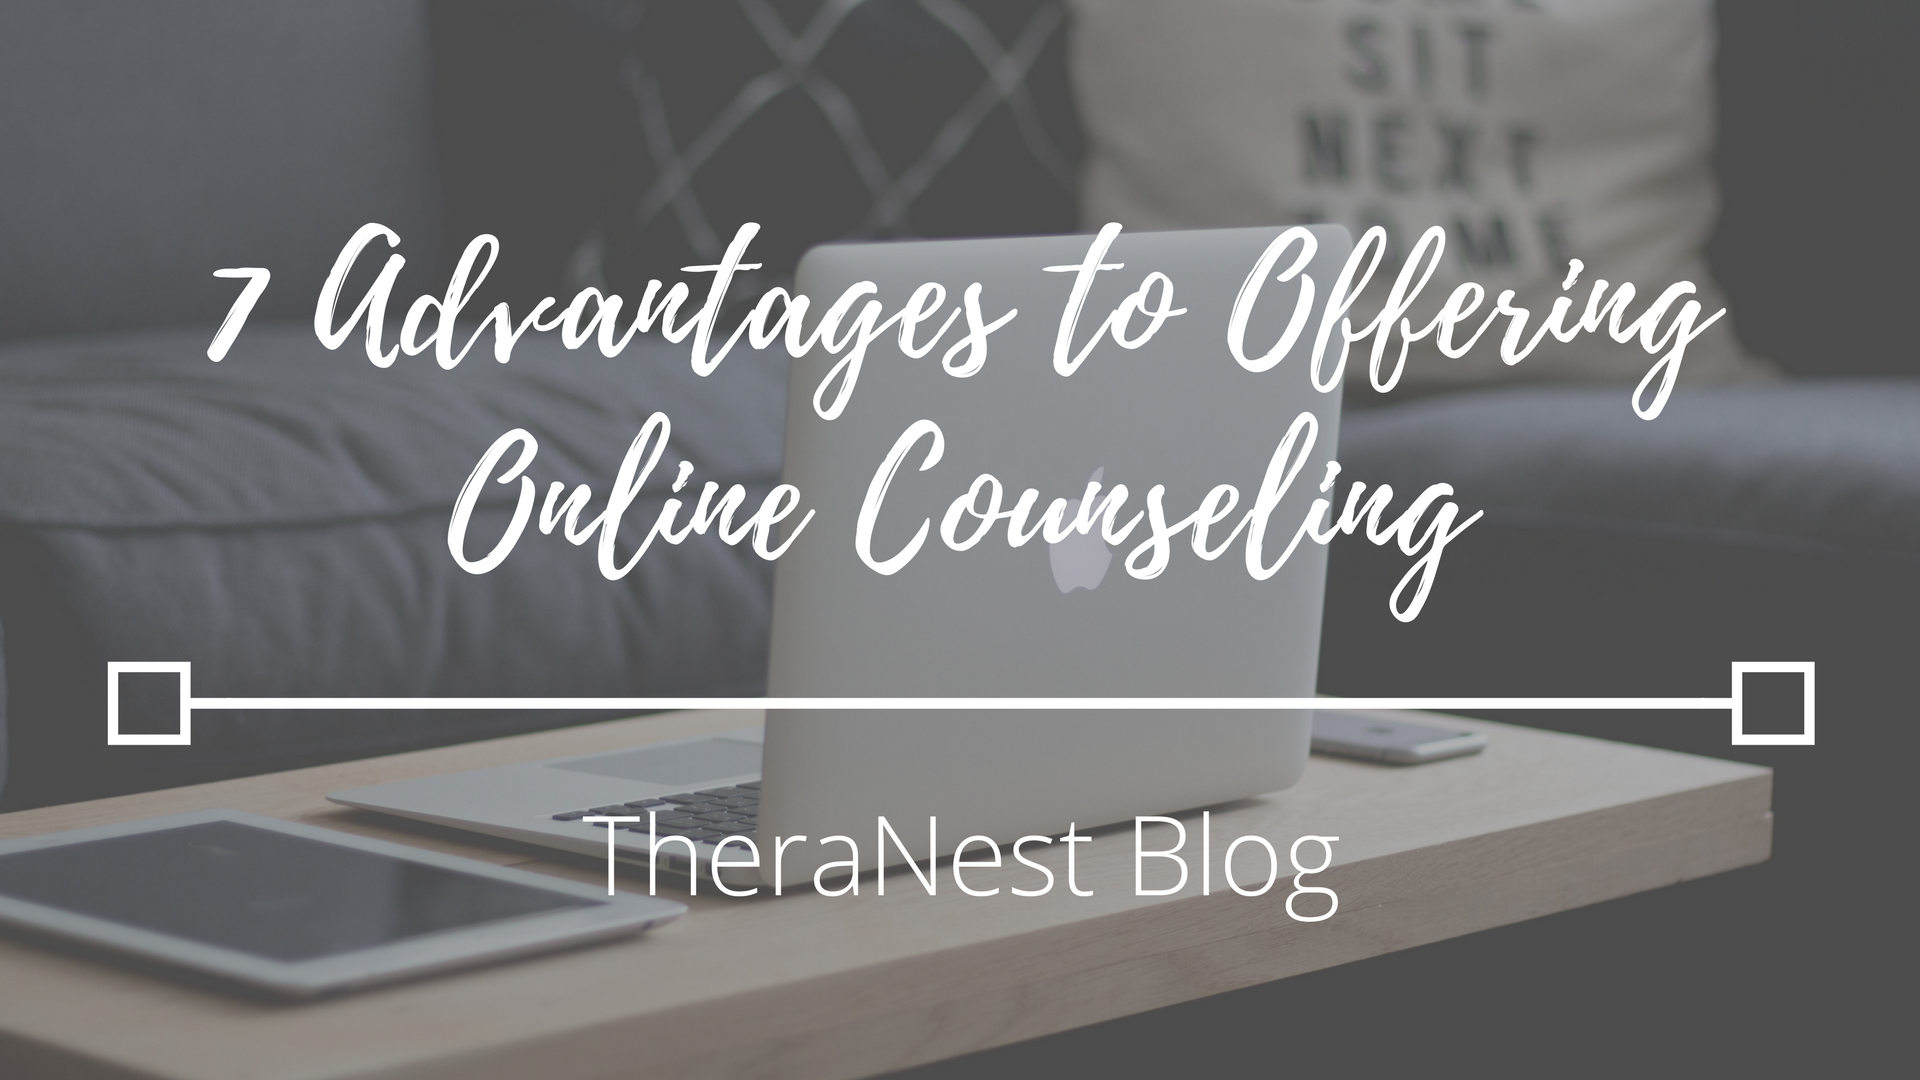 7 Advantages to Offering Online Counseling - TheraNest Blog